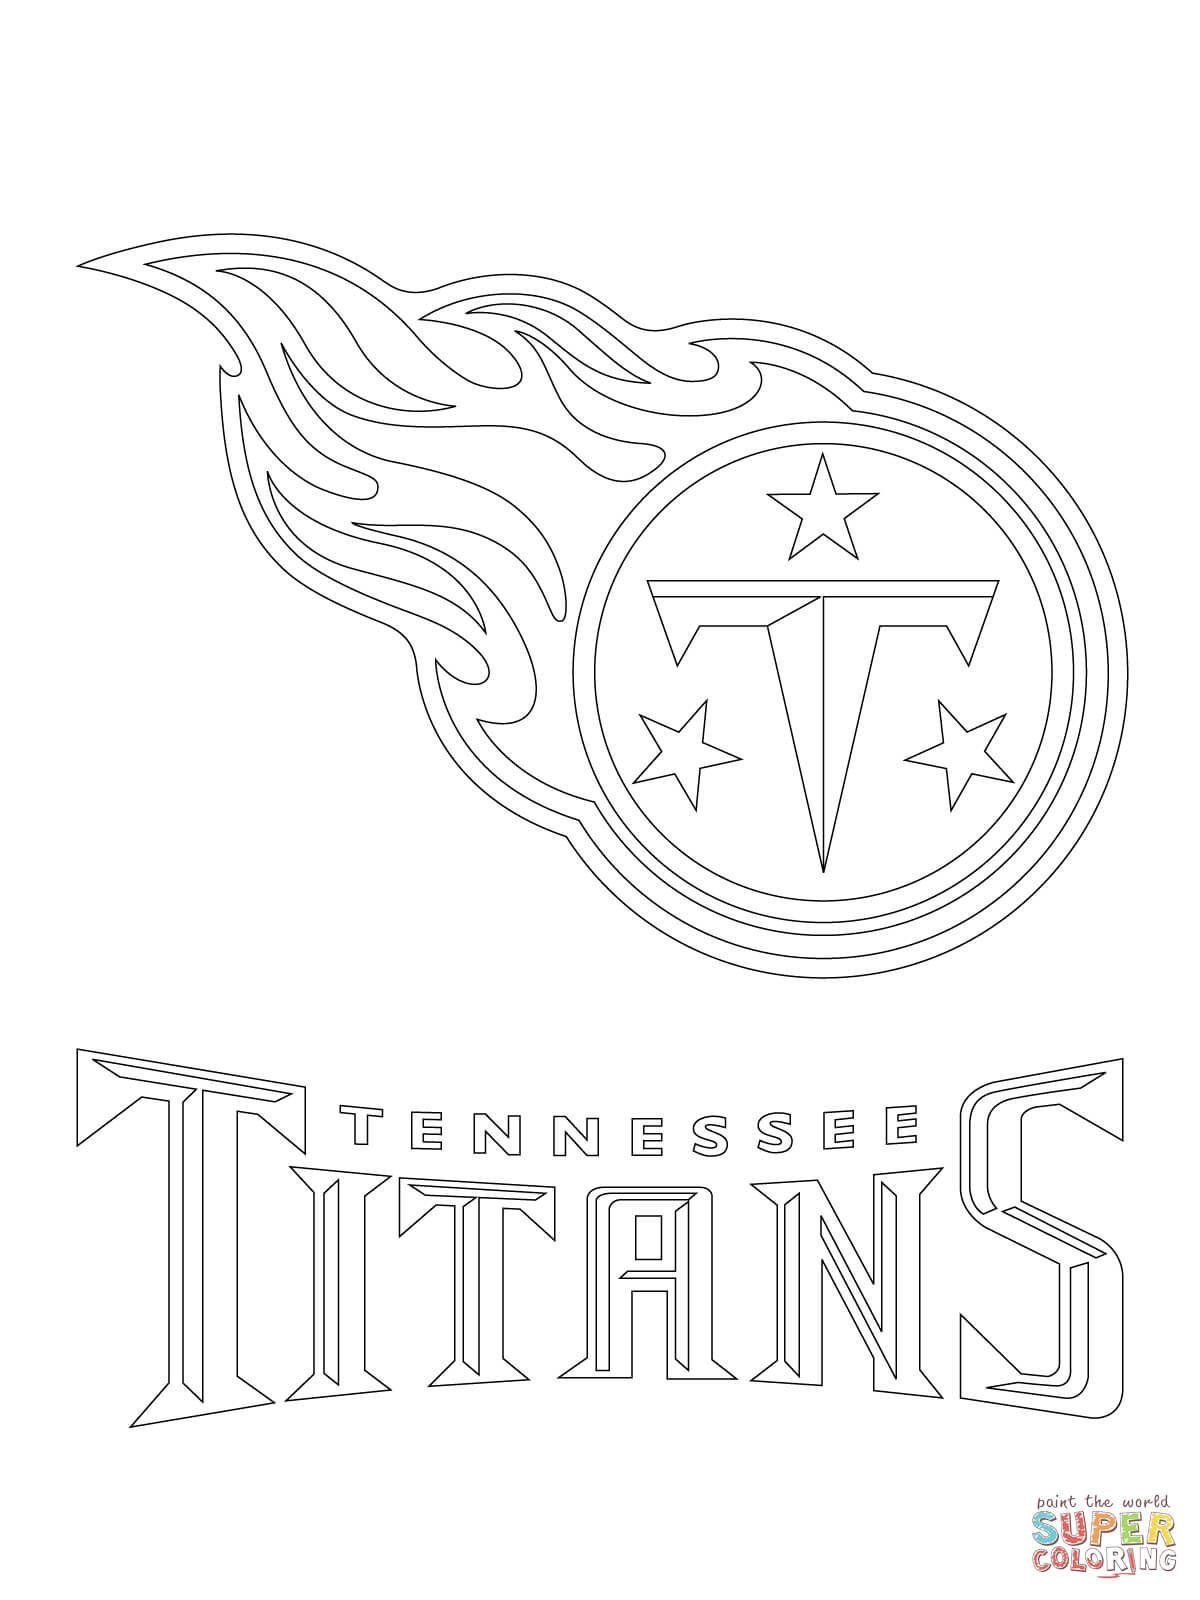 Tennessee Titans Logo Coloring Page Free Printable Coloring